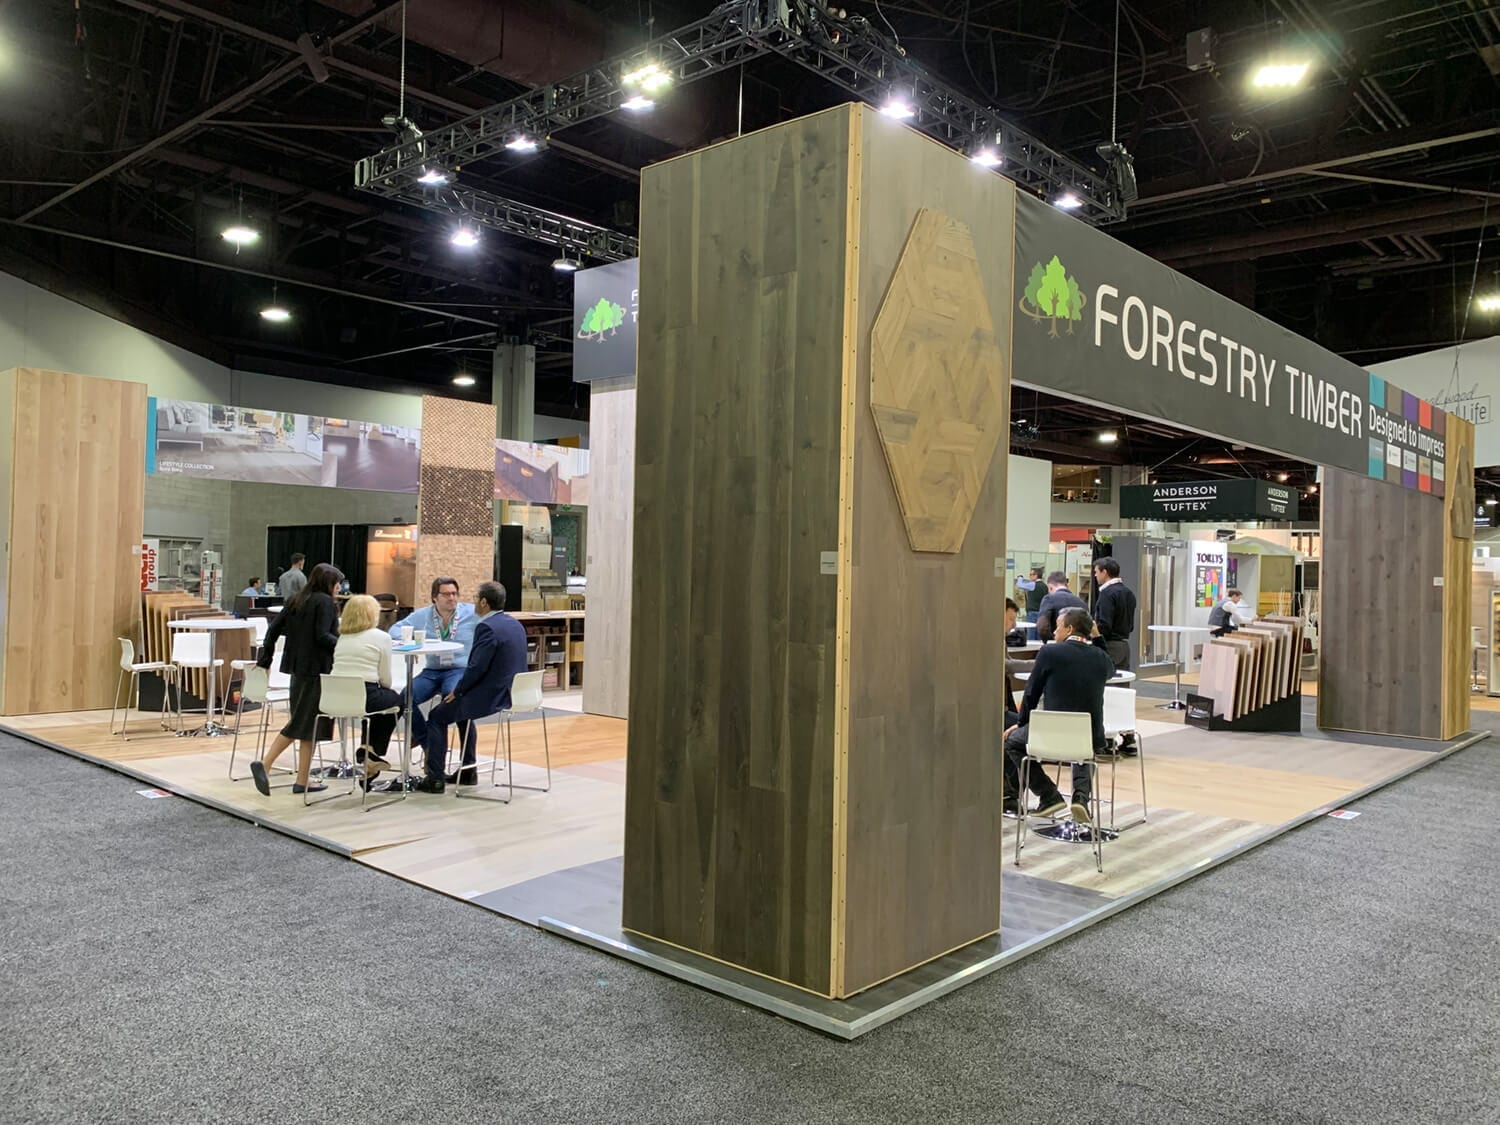 Domotex Exhibition Atlanta 2019 Forestry Timber-03